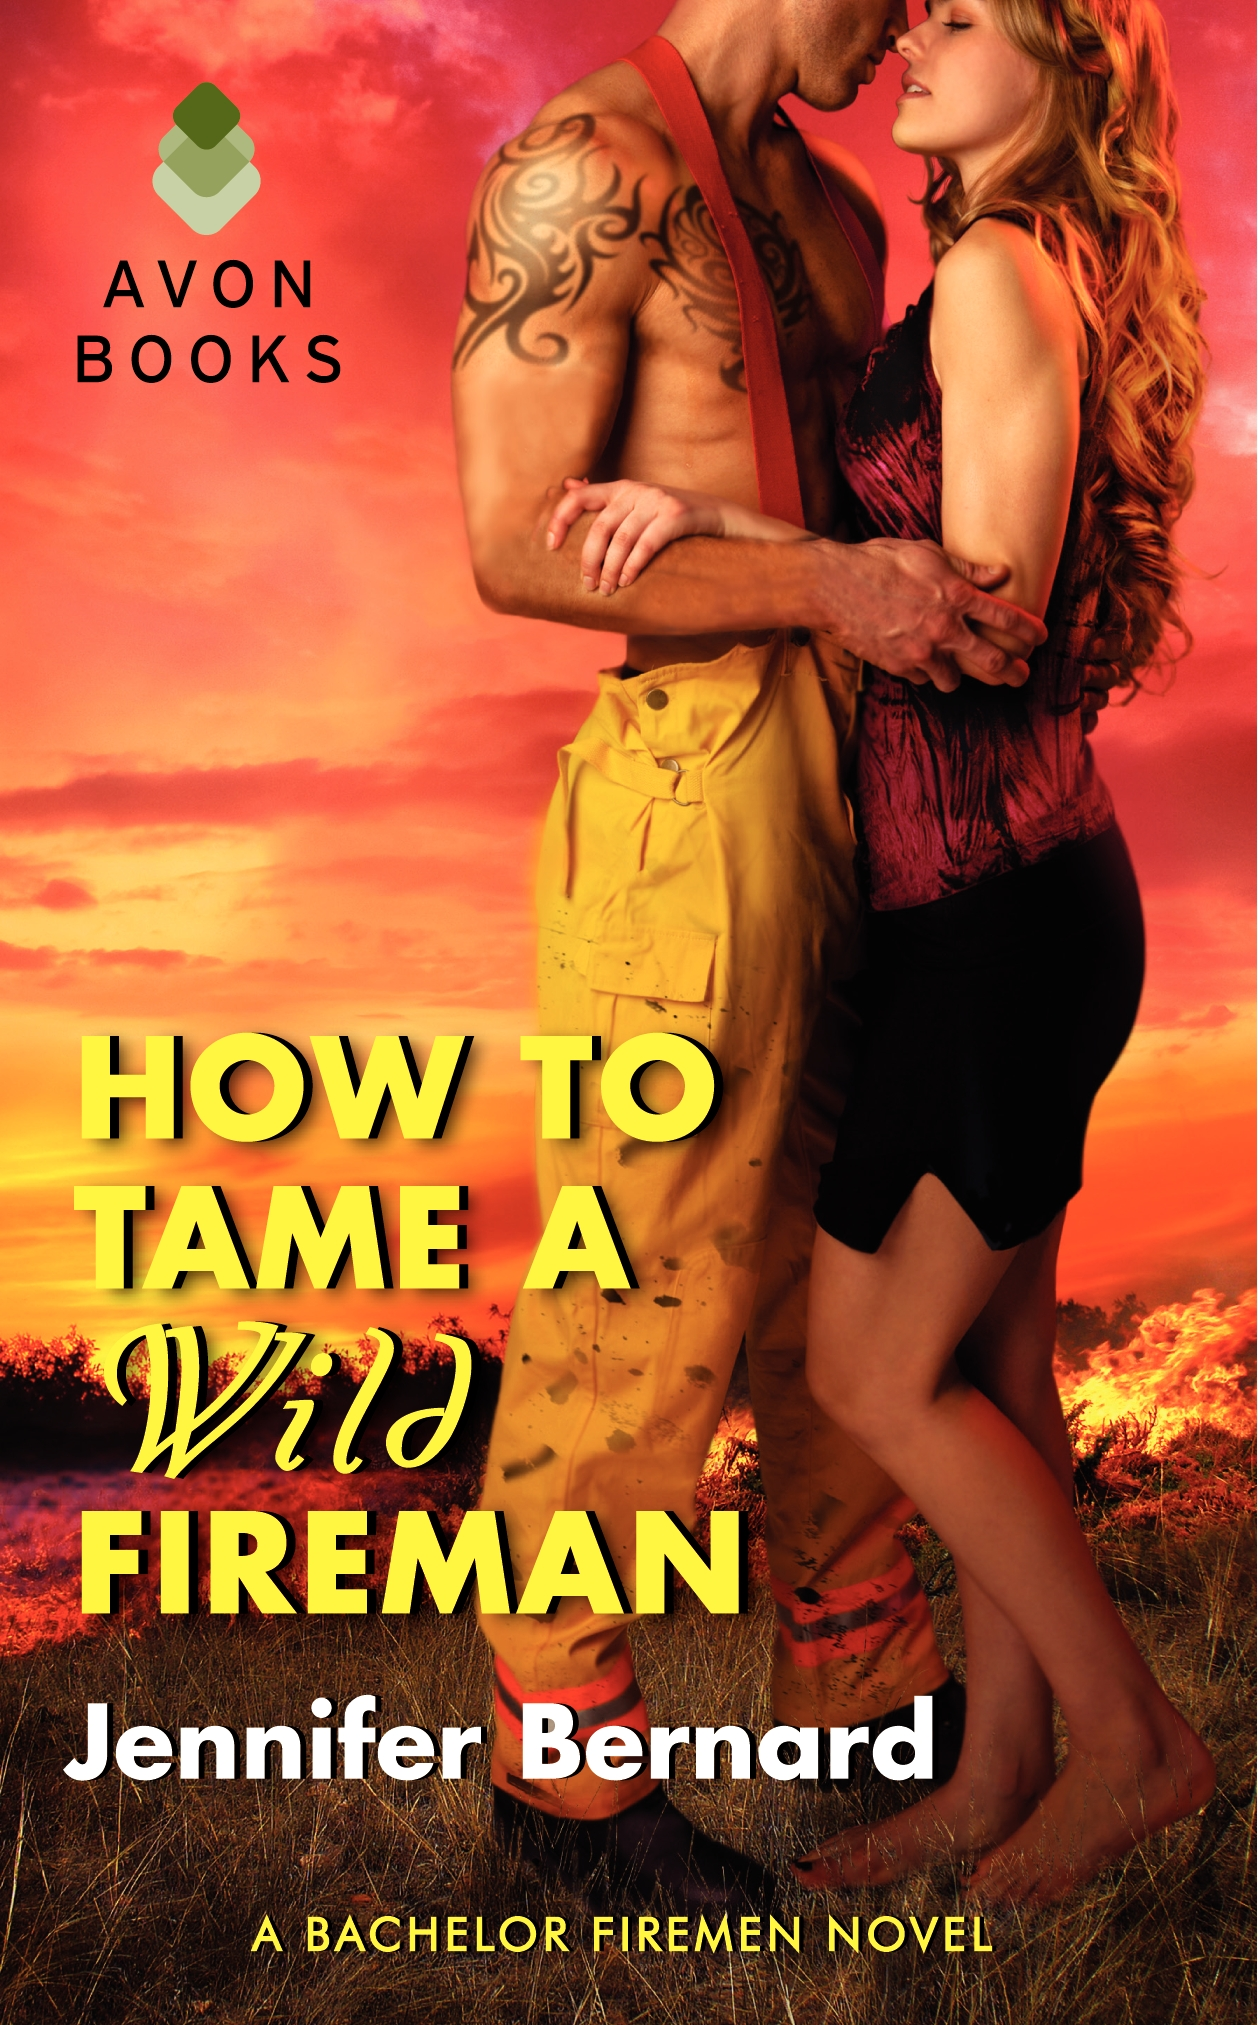 Jennifer Bernard The Bachelor Firemen of San Gabriel How to Tame a Wild Fireman 4.jpg